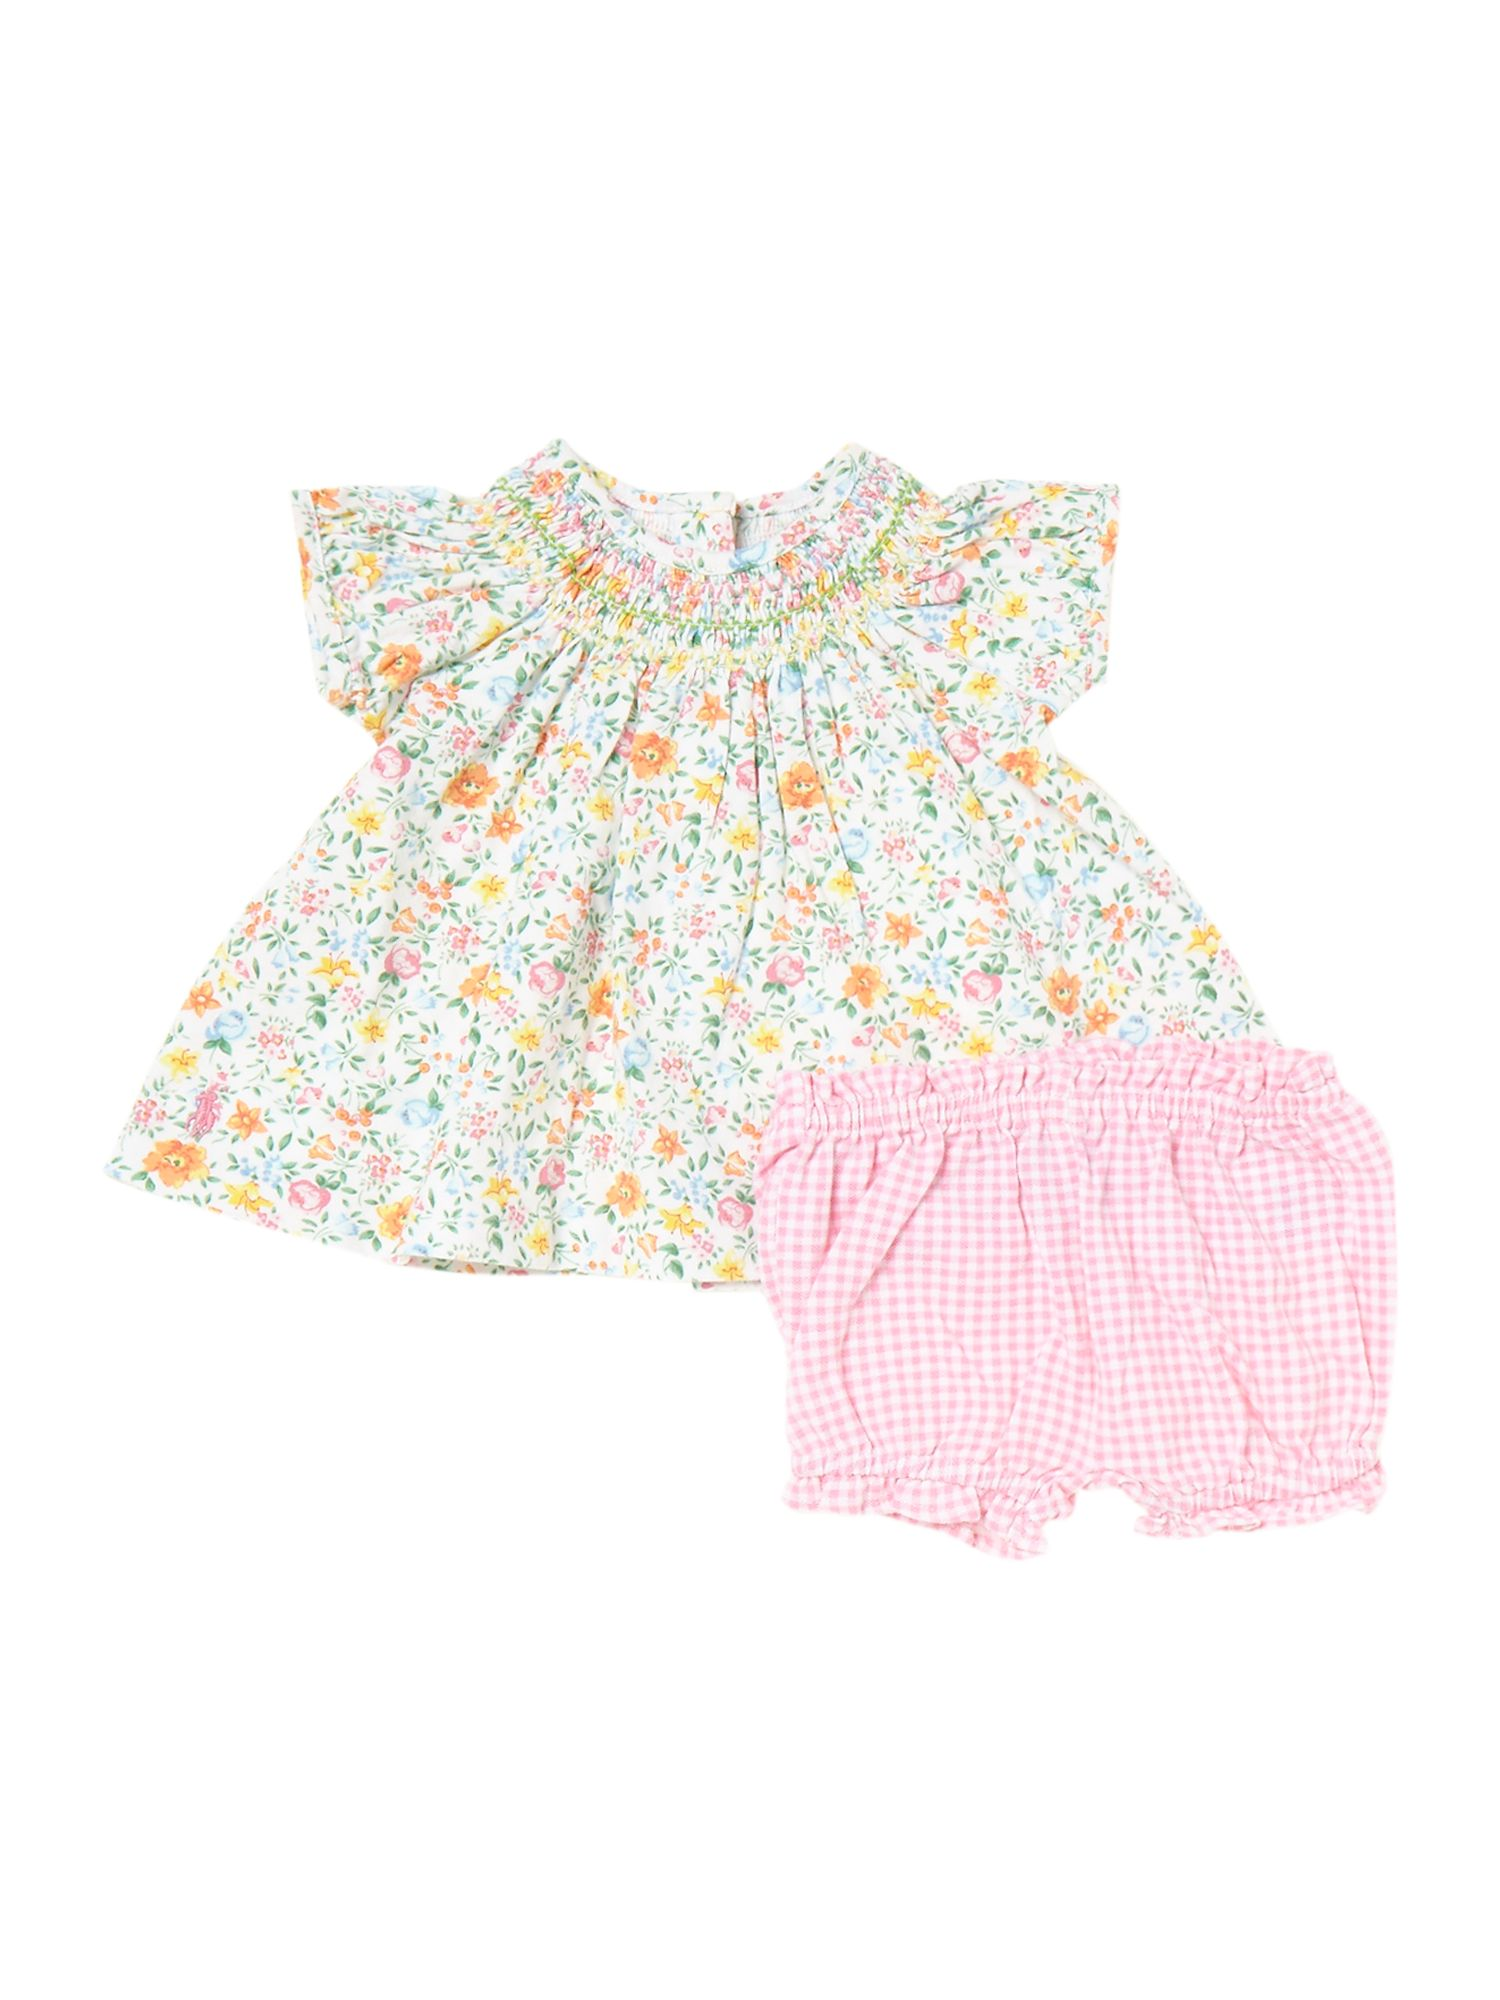 Babys floral top and bloomers set